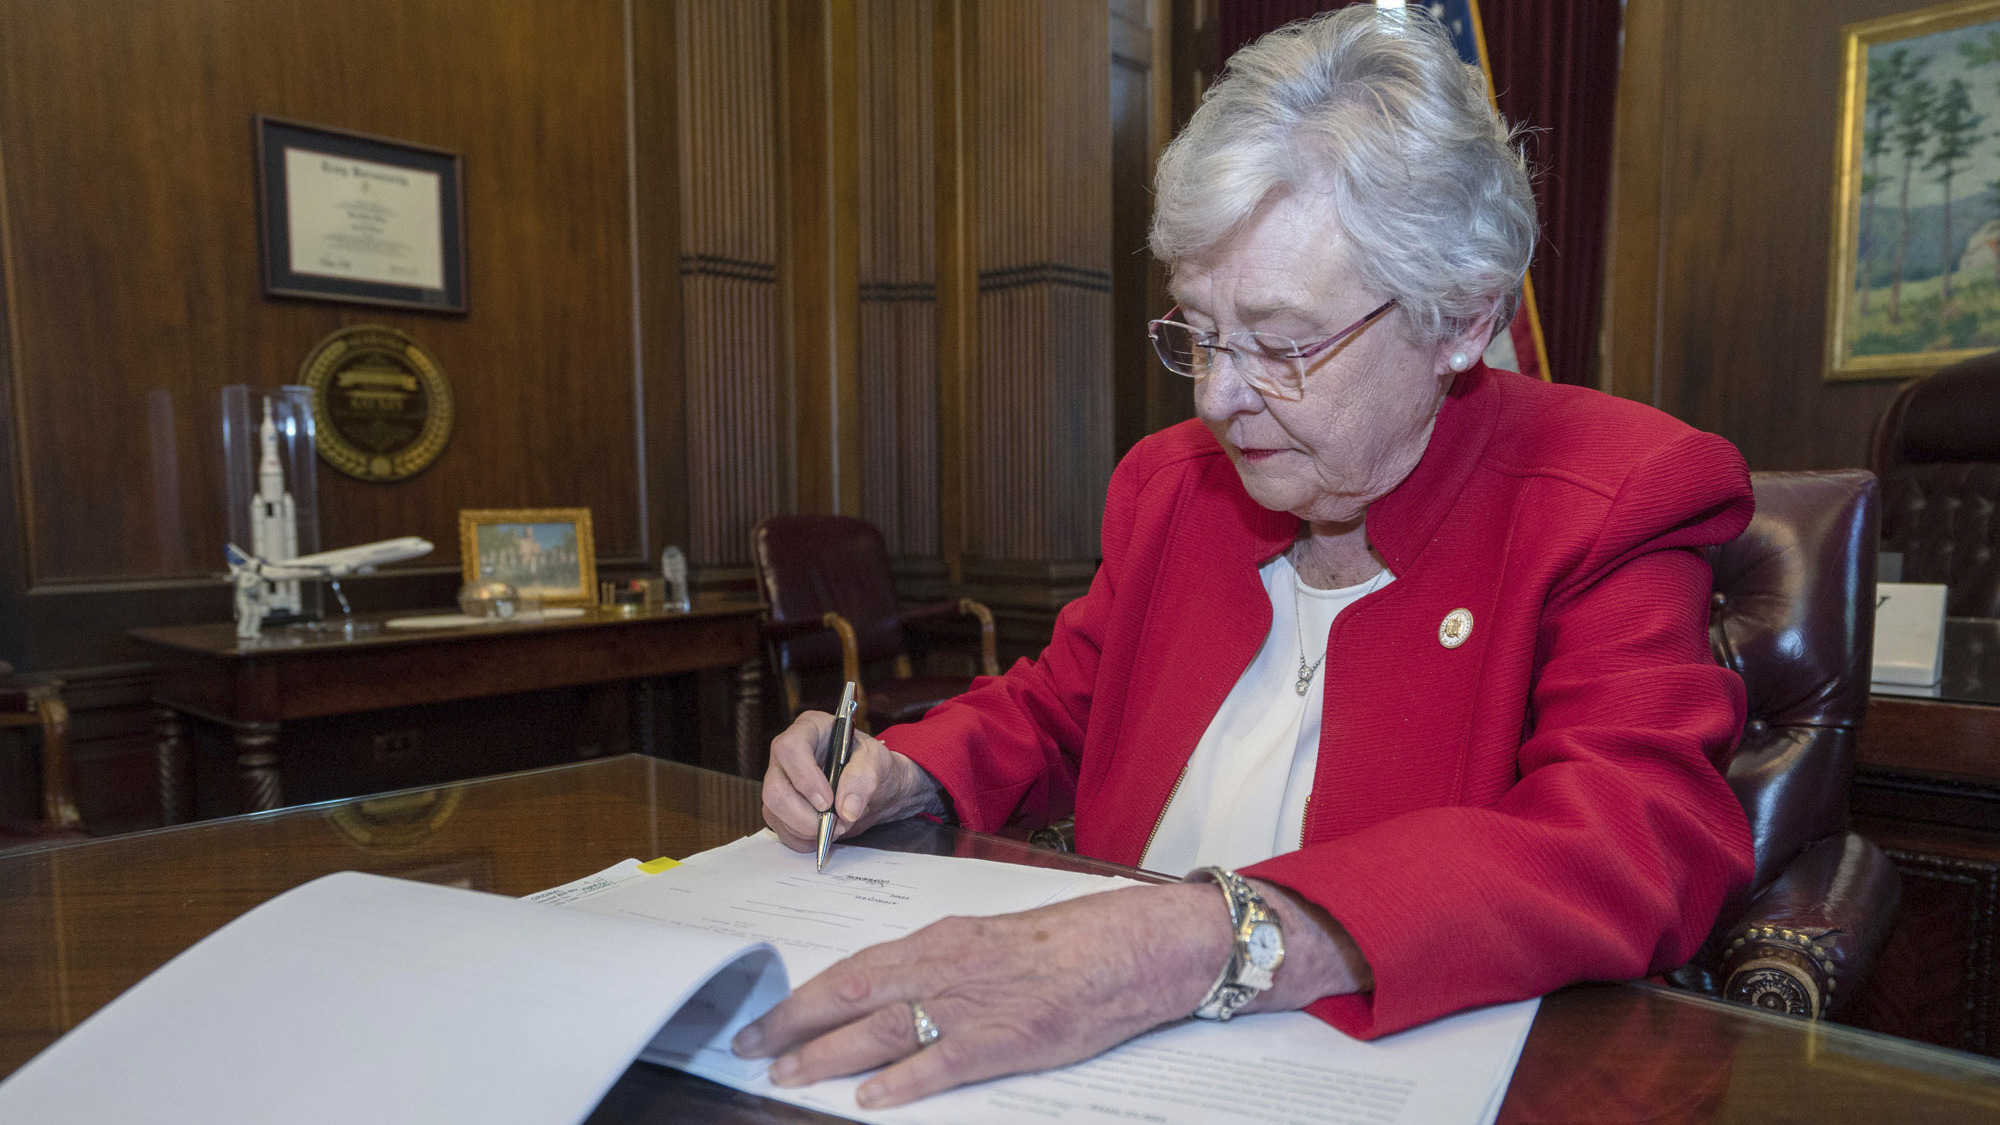 On Wednesday, Alabama Gov. Kay Ivey signed into law a ban on nearly all abortions.